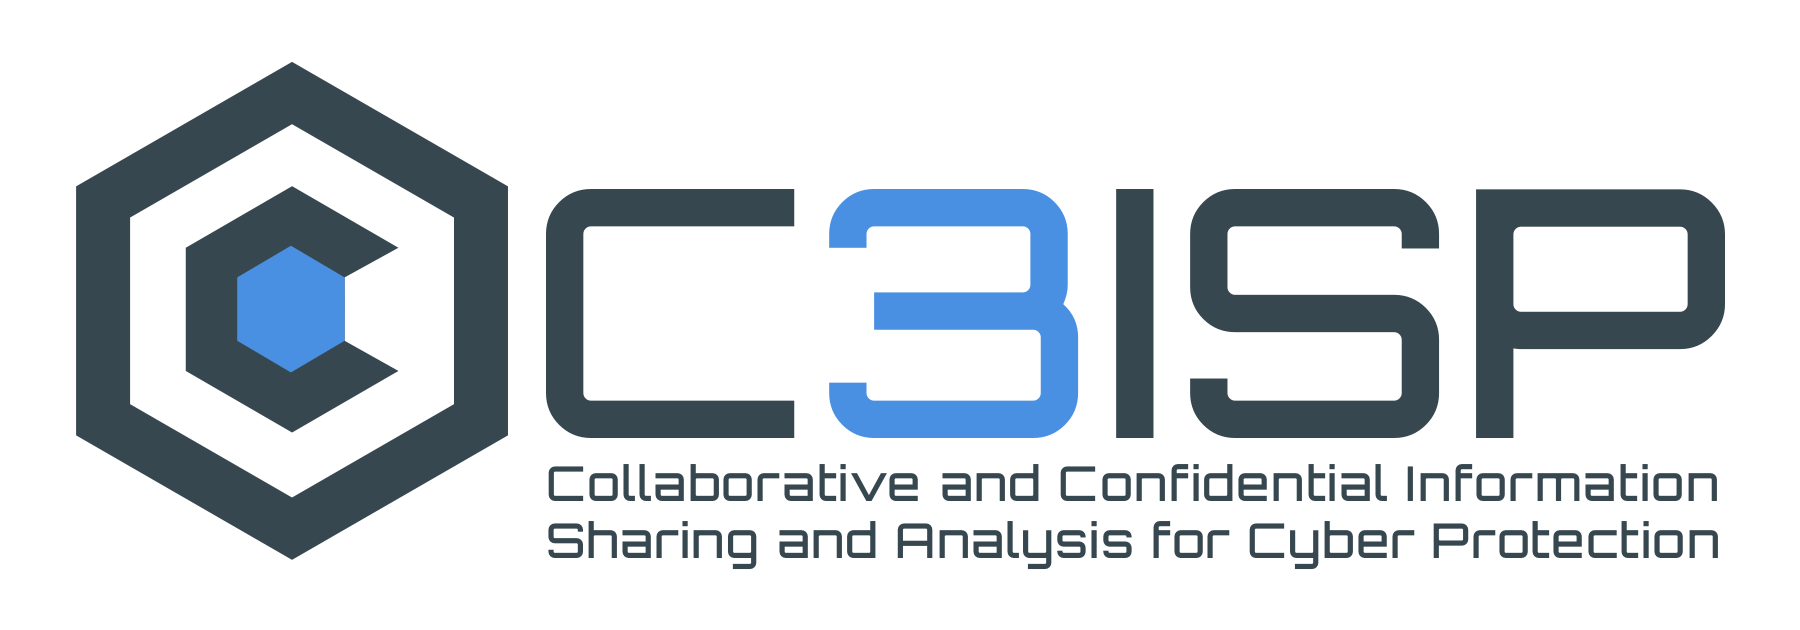 C3ISP: Collaborative & Confidential Information Sharing and Analysis for Cyber Protection